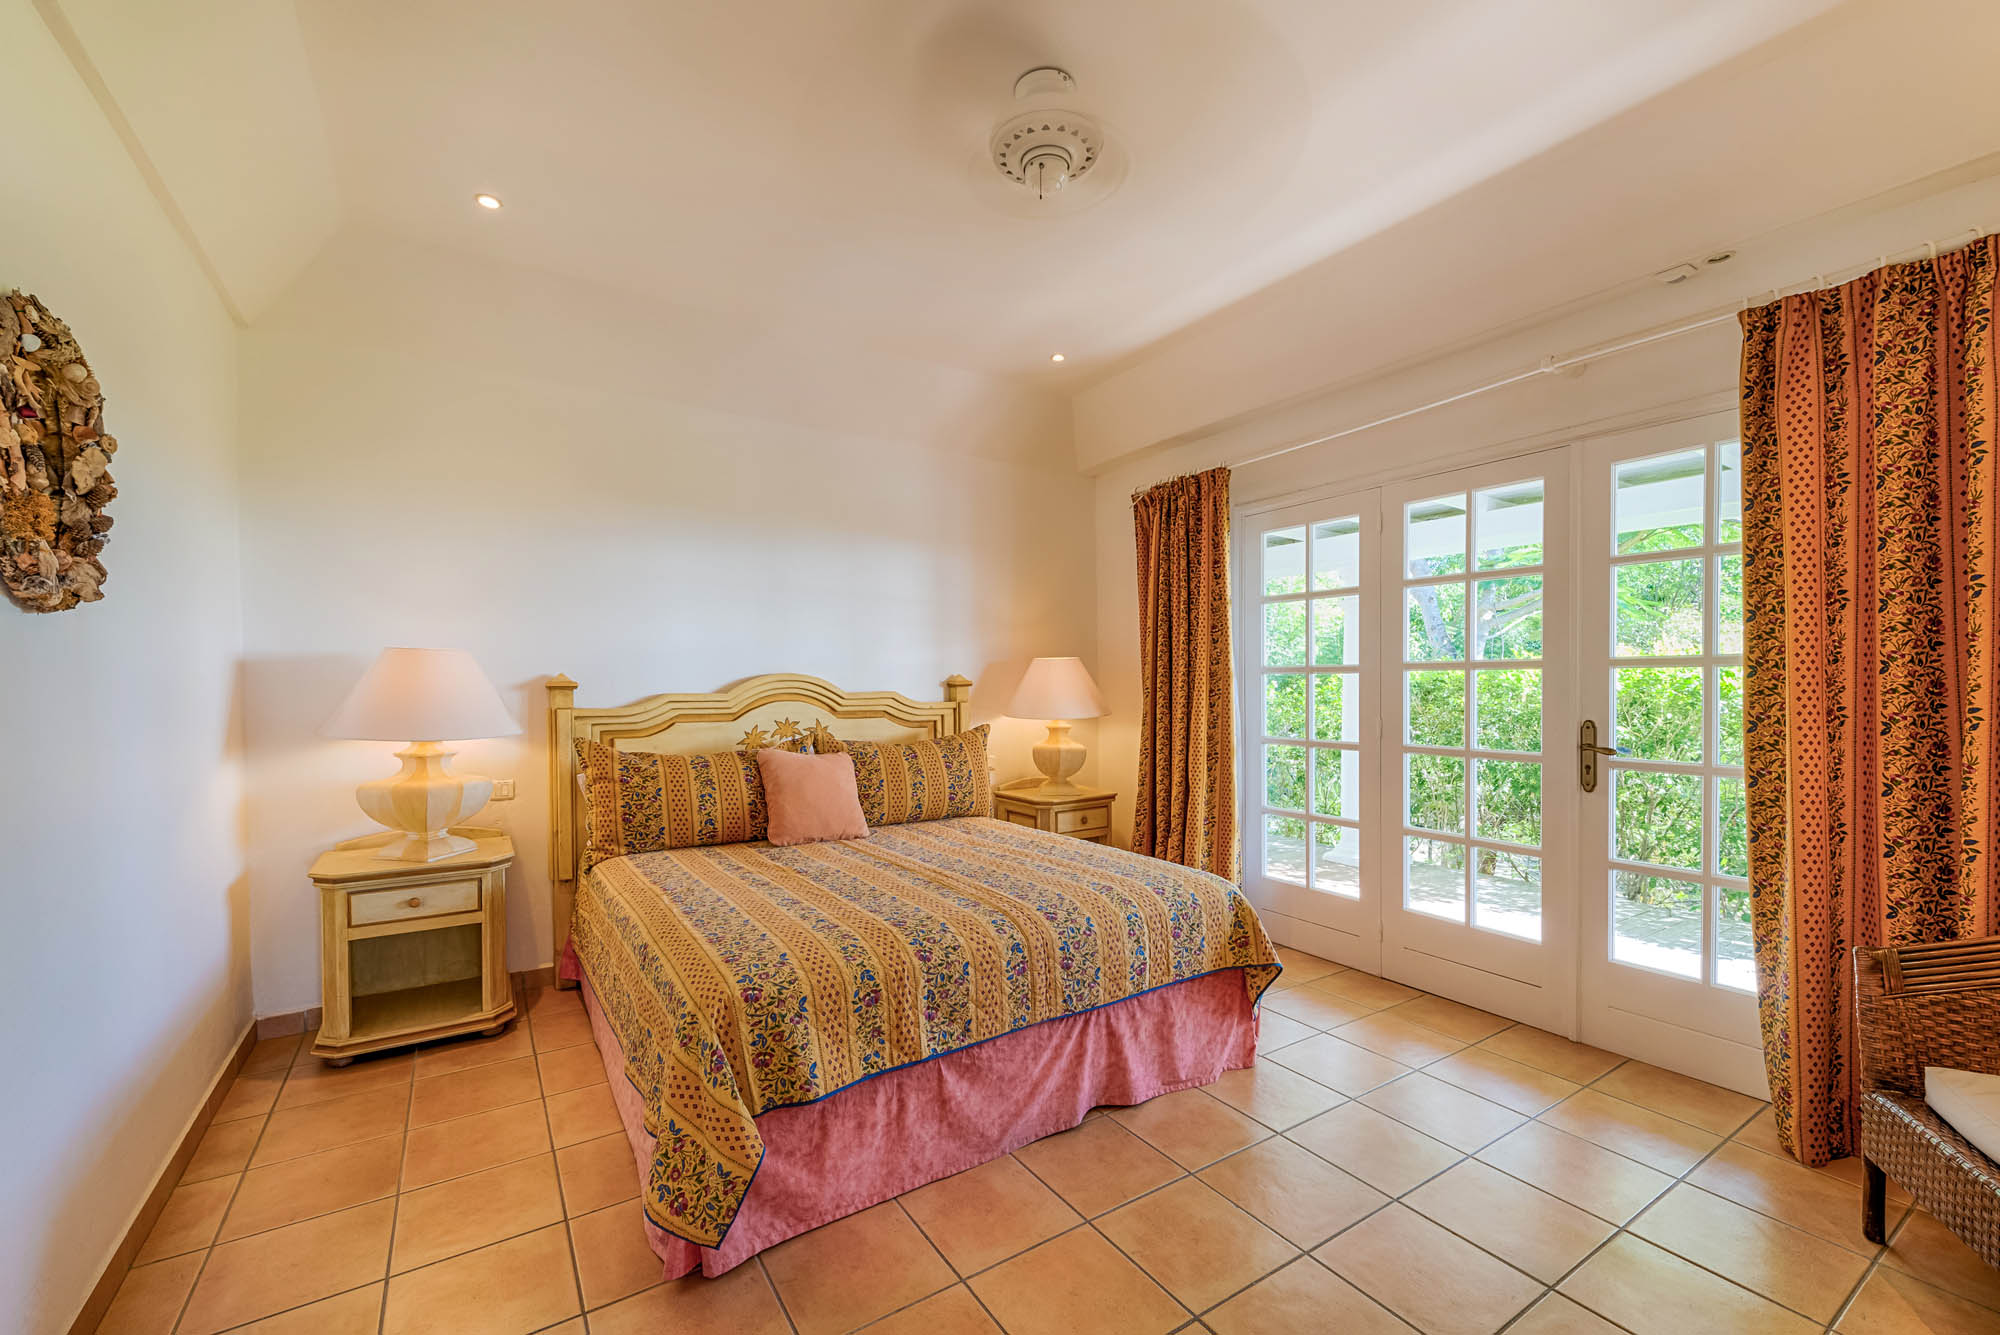 Little Provence villa rental, Baie Longue, Terres-Basses, Saint Martin, Caribbean has two spacious master bedrooms and can be rented as 1 or 2 bedroom villa.